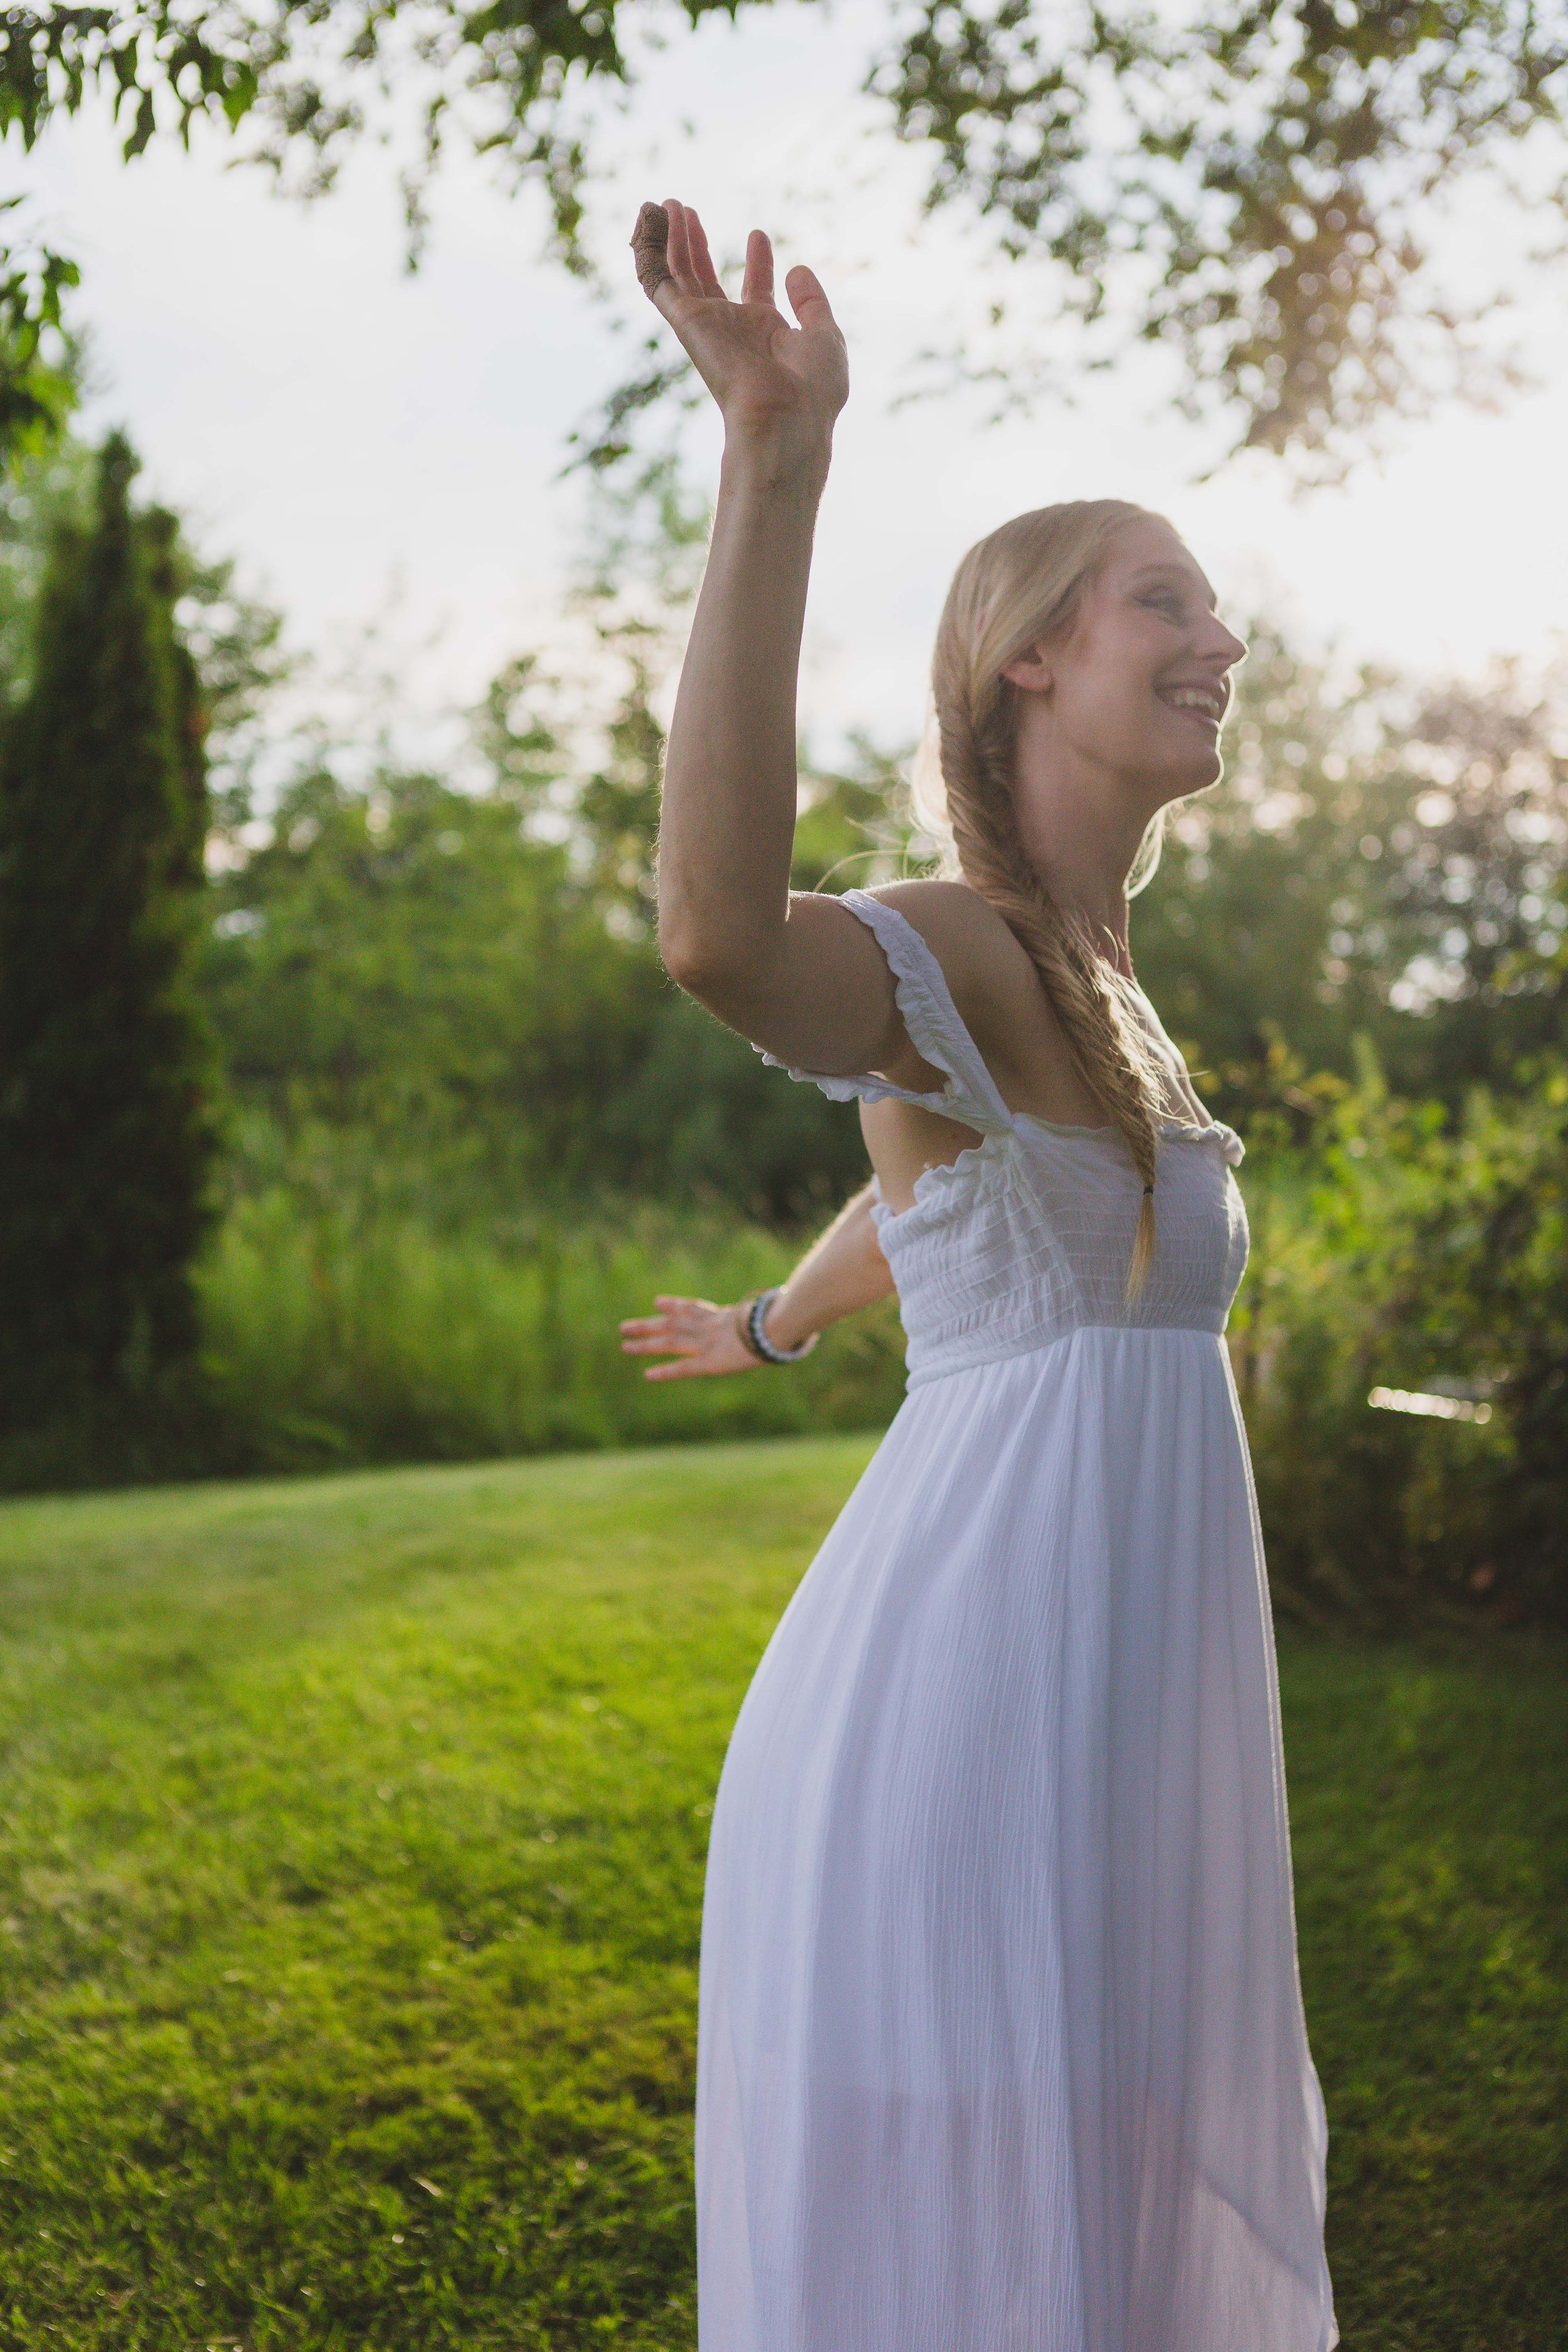 Shelly Burton, energy medicine woman, dancing in the countryside where her healing with horses sessions occur.